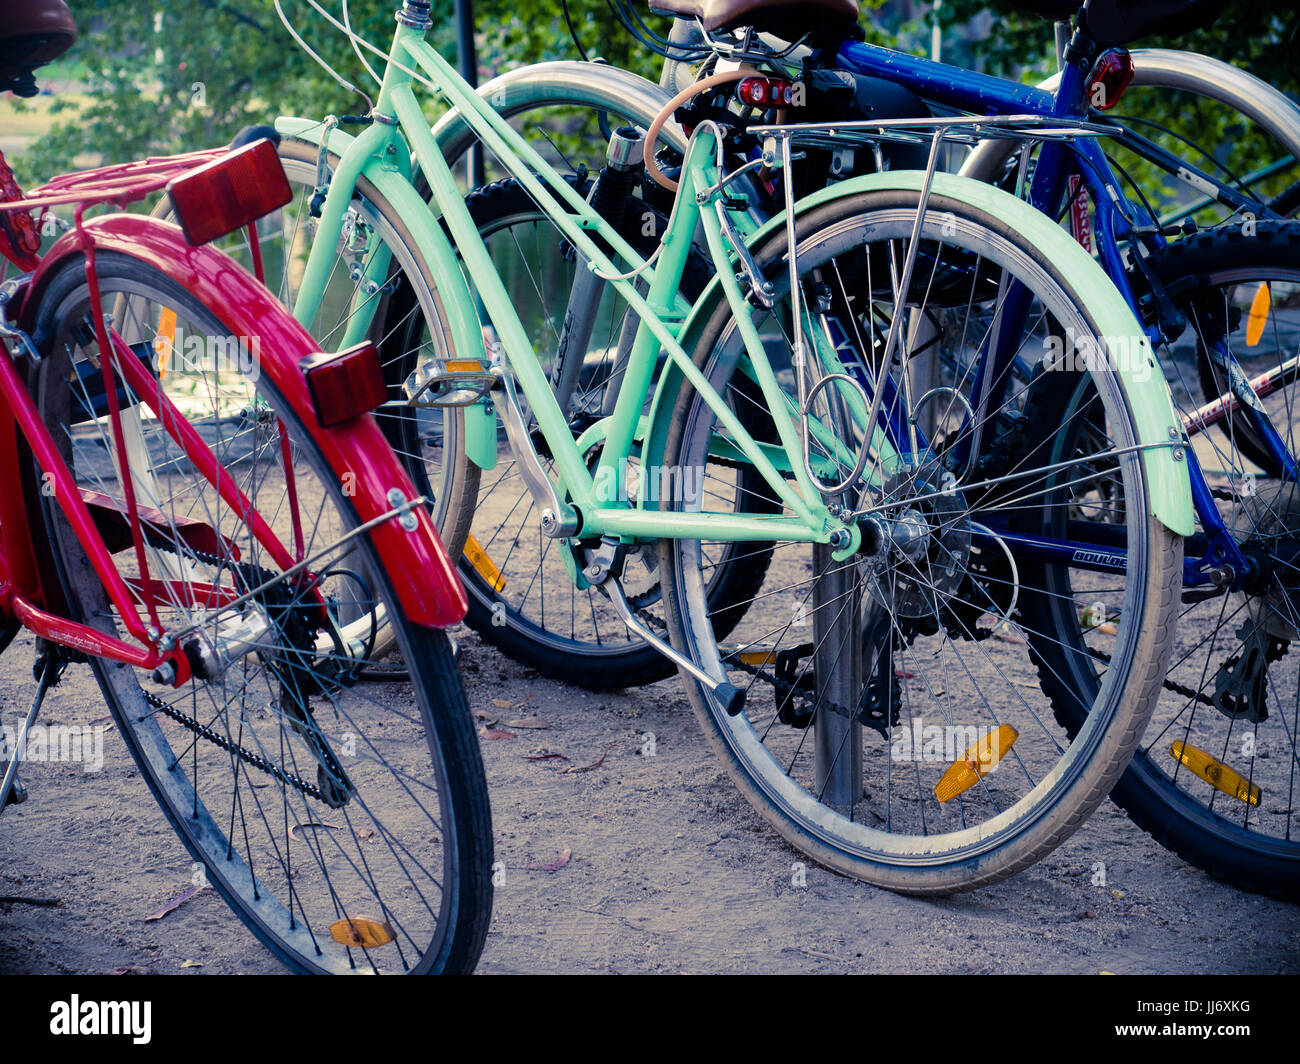 Three Colourful Bicycles - Stock Image